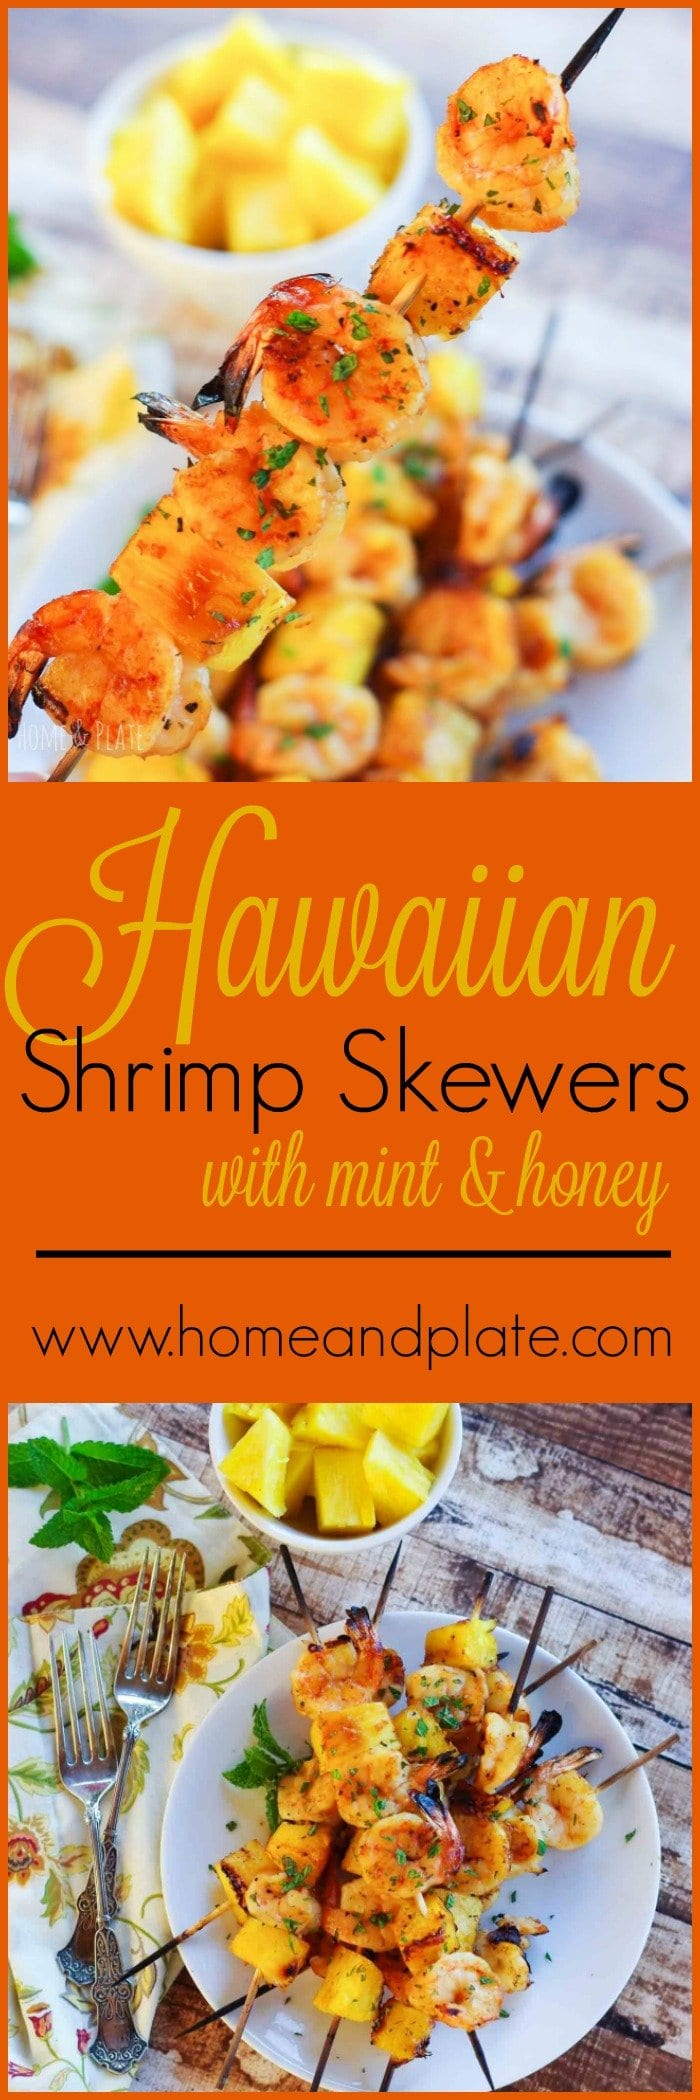 Mint & Honey Hawaiian Shrimp Skewers | Bring the flavors of the Hawaiian islands to your table with these tasty grilled shrimp and pineapple skewers.